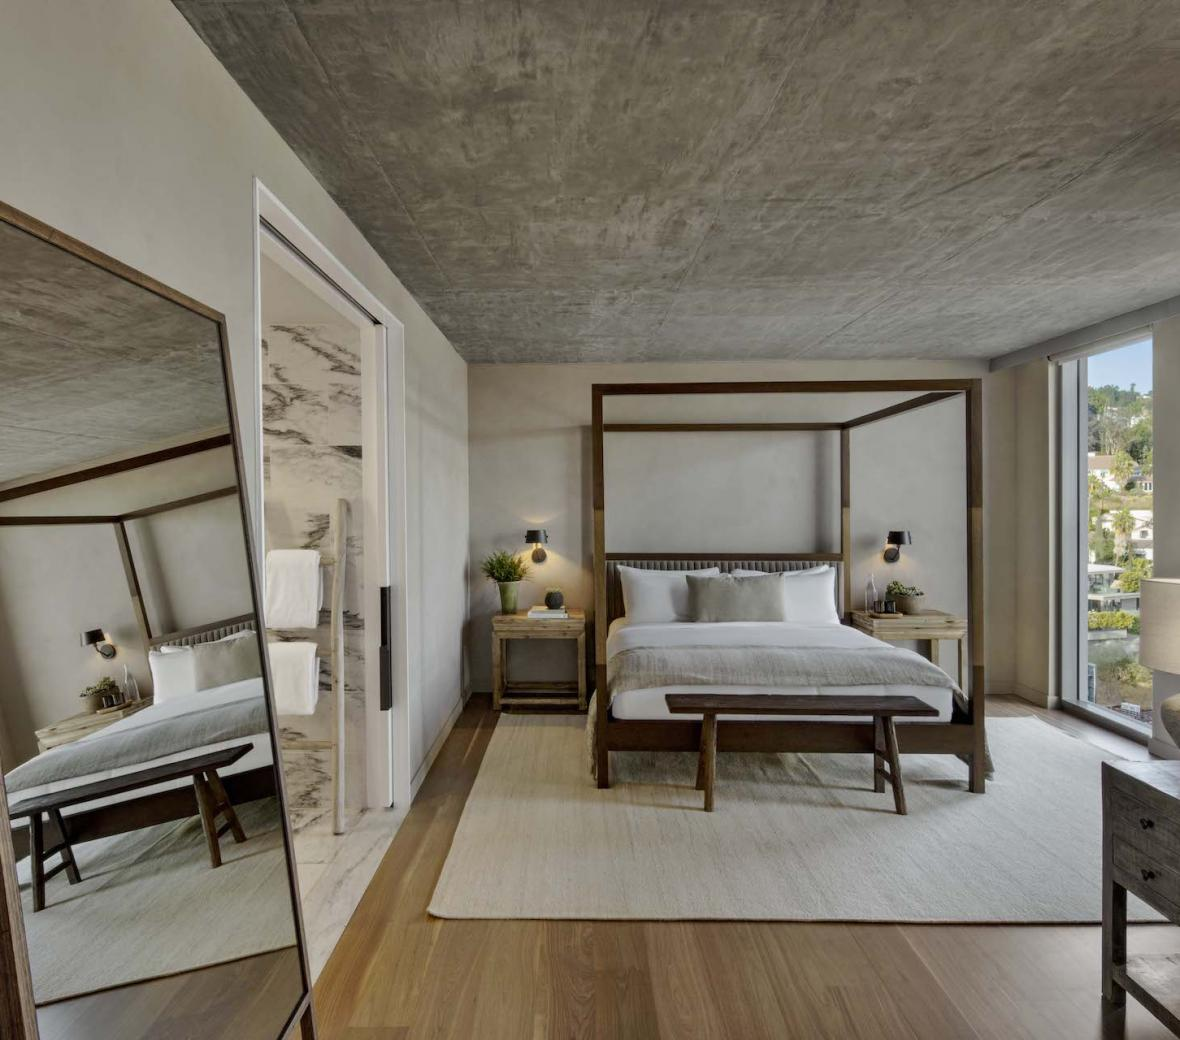 1 Hotel West Hollywood Hills House Bedroom